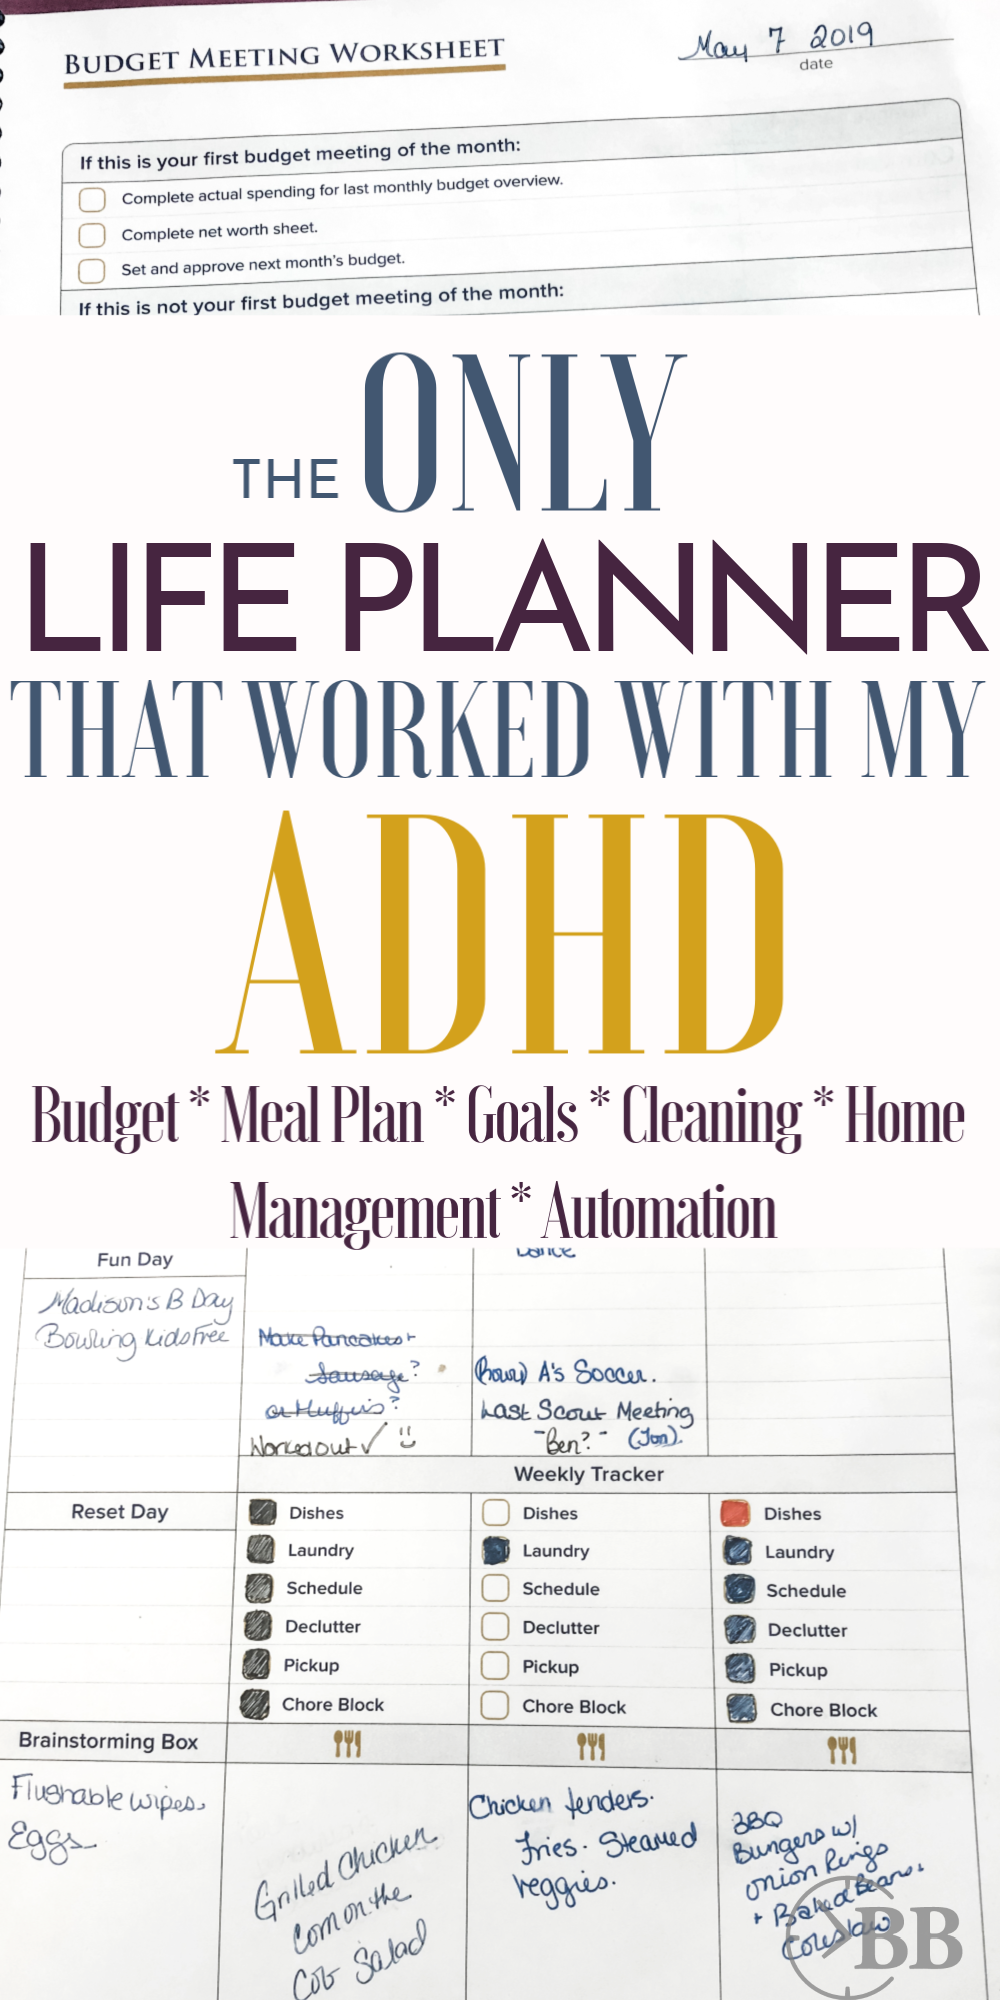 Agree. This is the best daily life planner for busy moms. I have ADHD and this is the only planner that ever worked with my ADHD brain. It handles my daily schedule, automates my home routines, manages the budget, meal planning and helps me with time management.  I think I tried every life planner available in 2019, and this is the only one that worked. I've been using it for about 8 months now. #lifeplanner #adhd